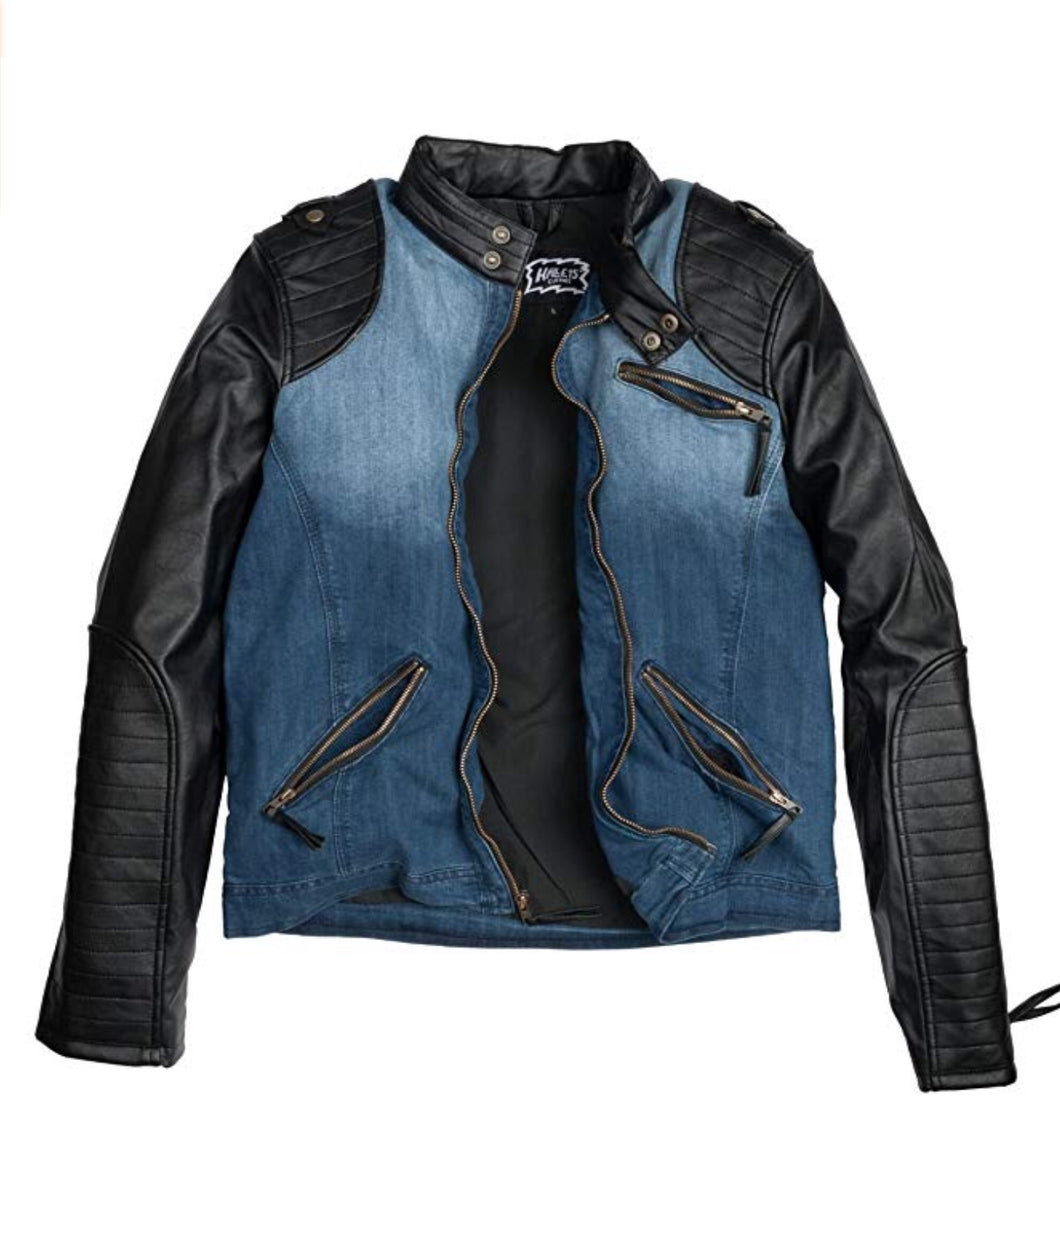 Herren Outdoorjacke - BIKER Denim Midblue